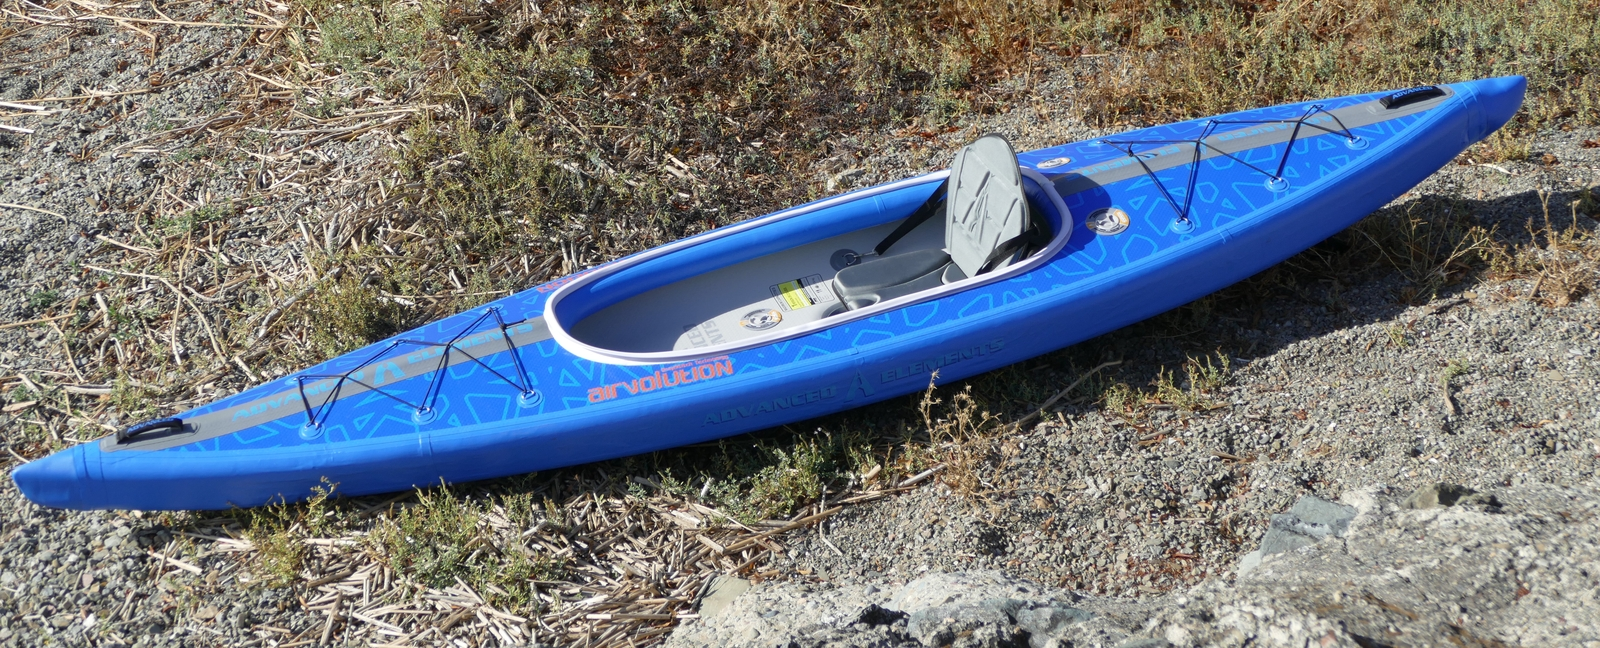 AirVolution High Pressure Dropstitch Kayak